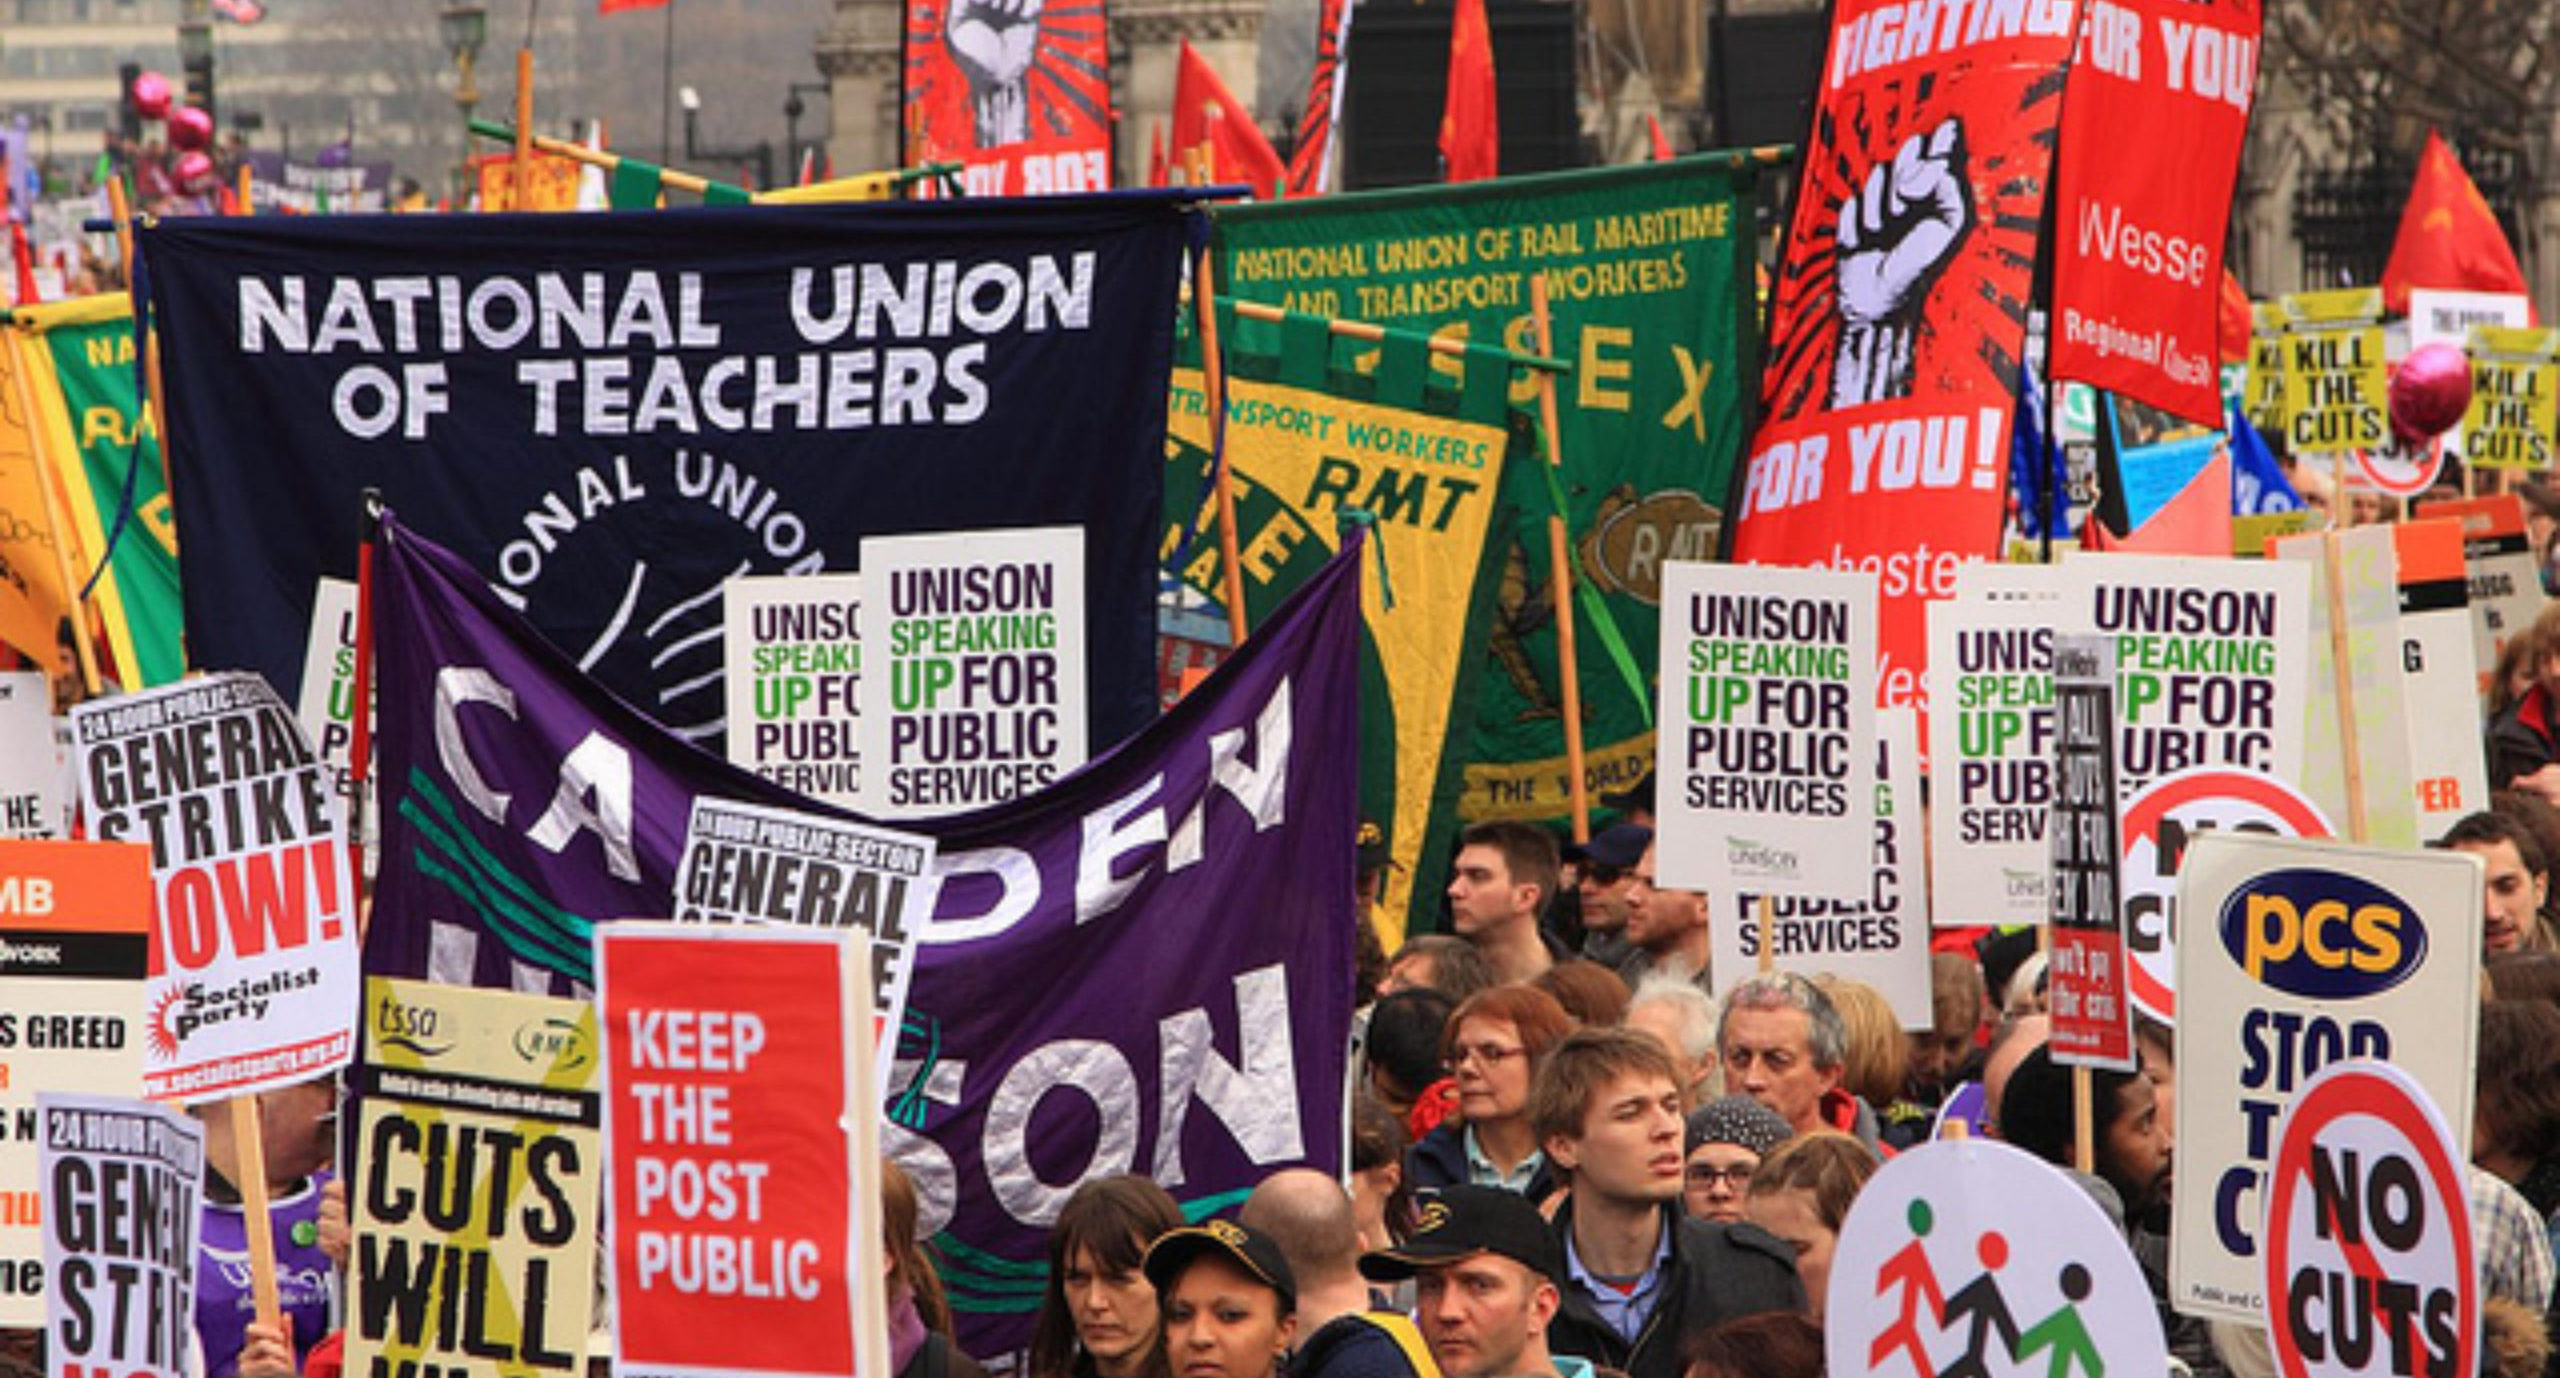 Trade unions, workers and the housing struggle – organise and unite to win